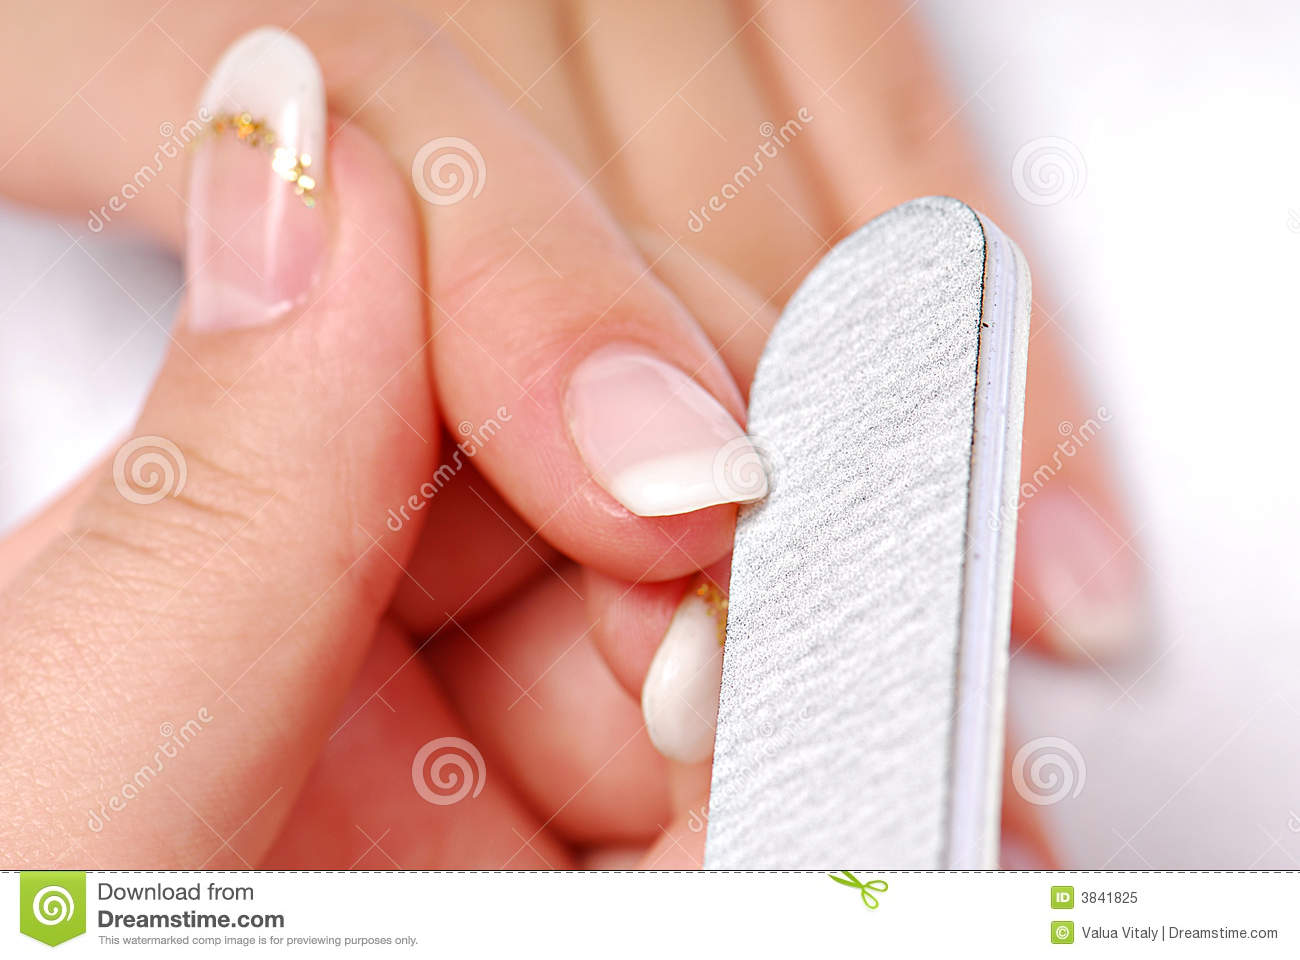 cleaning nails royalty free stock photo